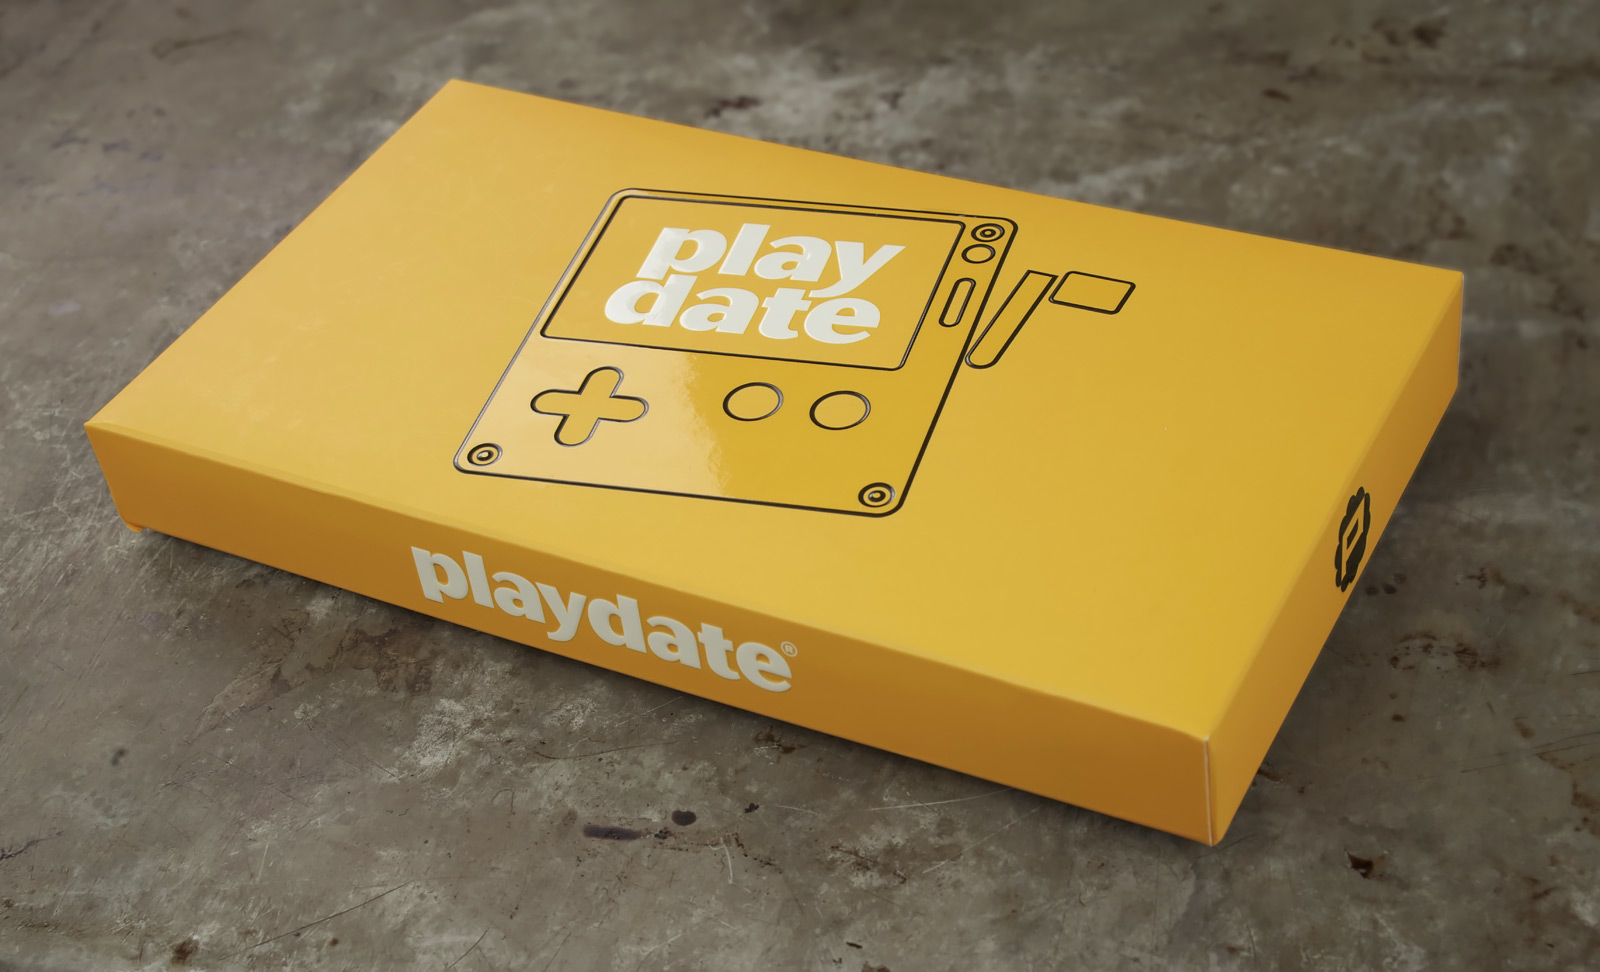 The packaging for Playdate